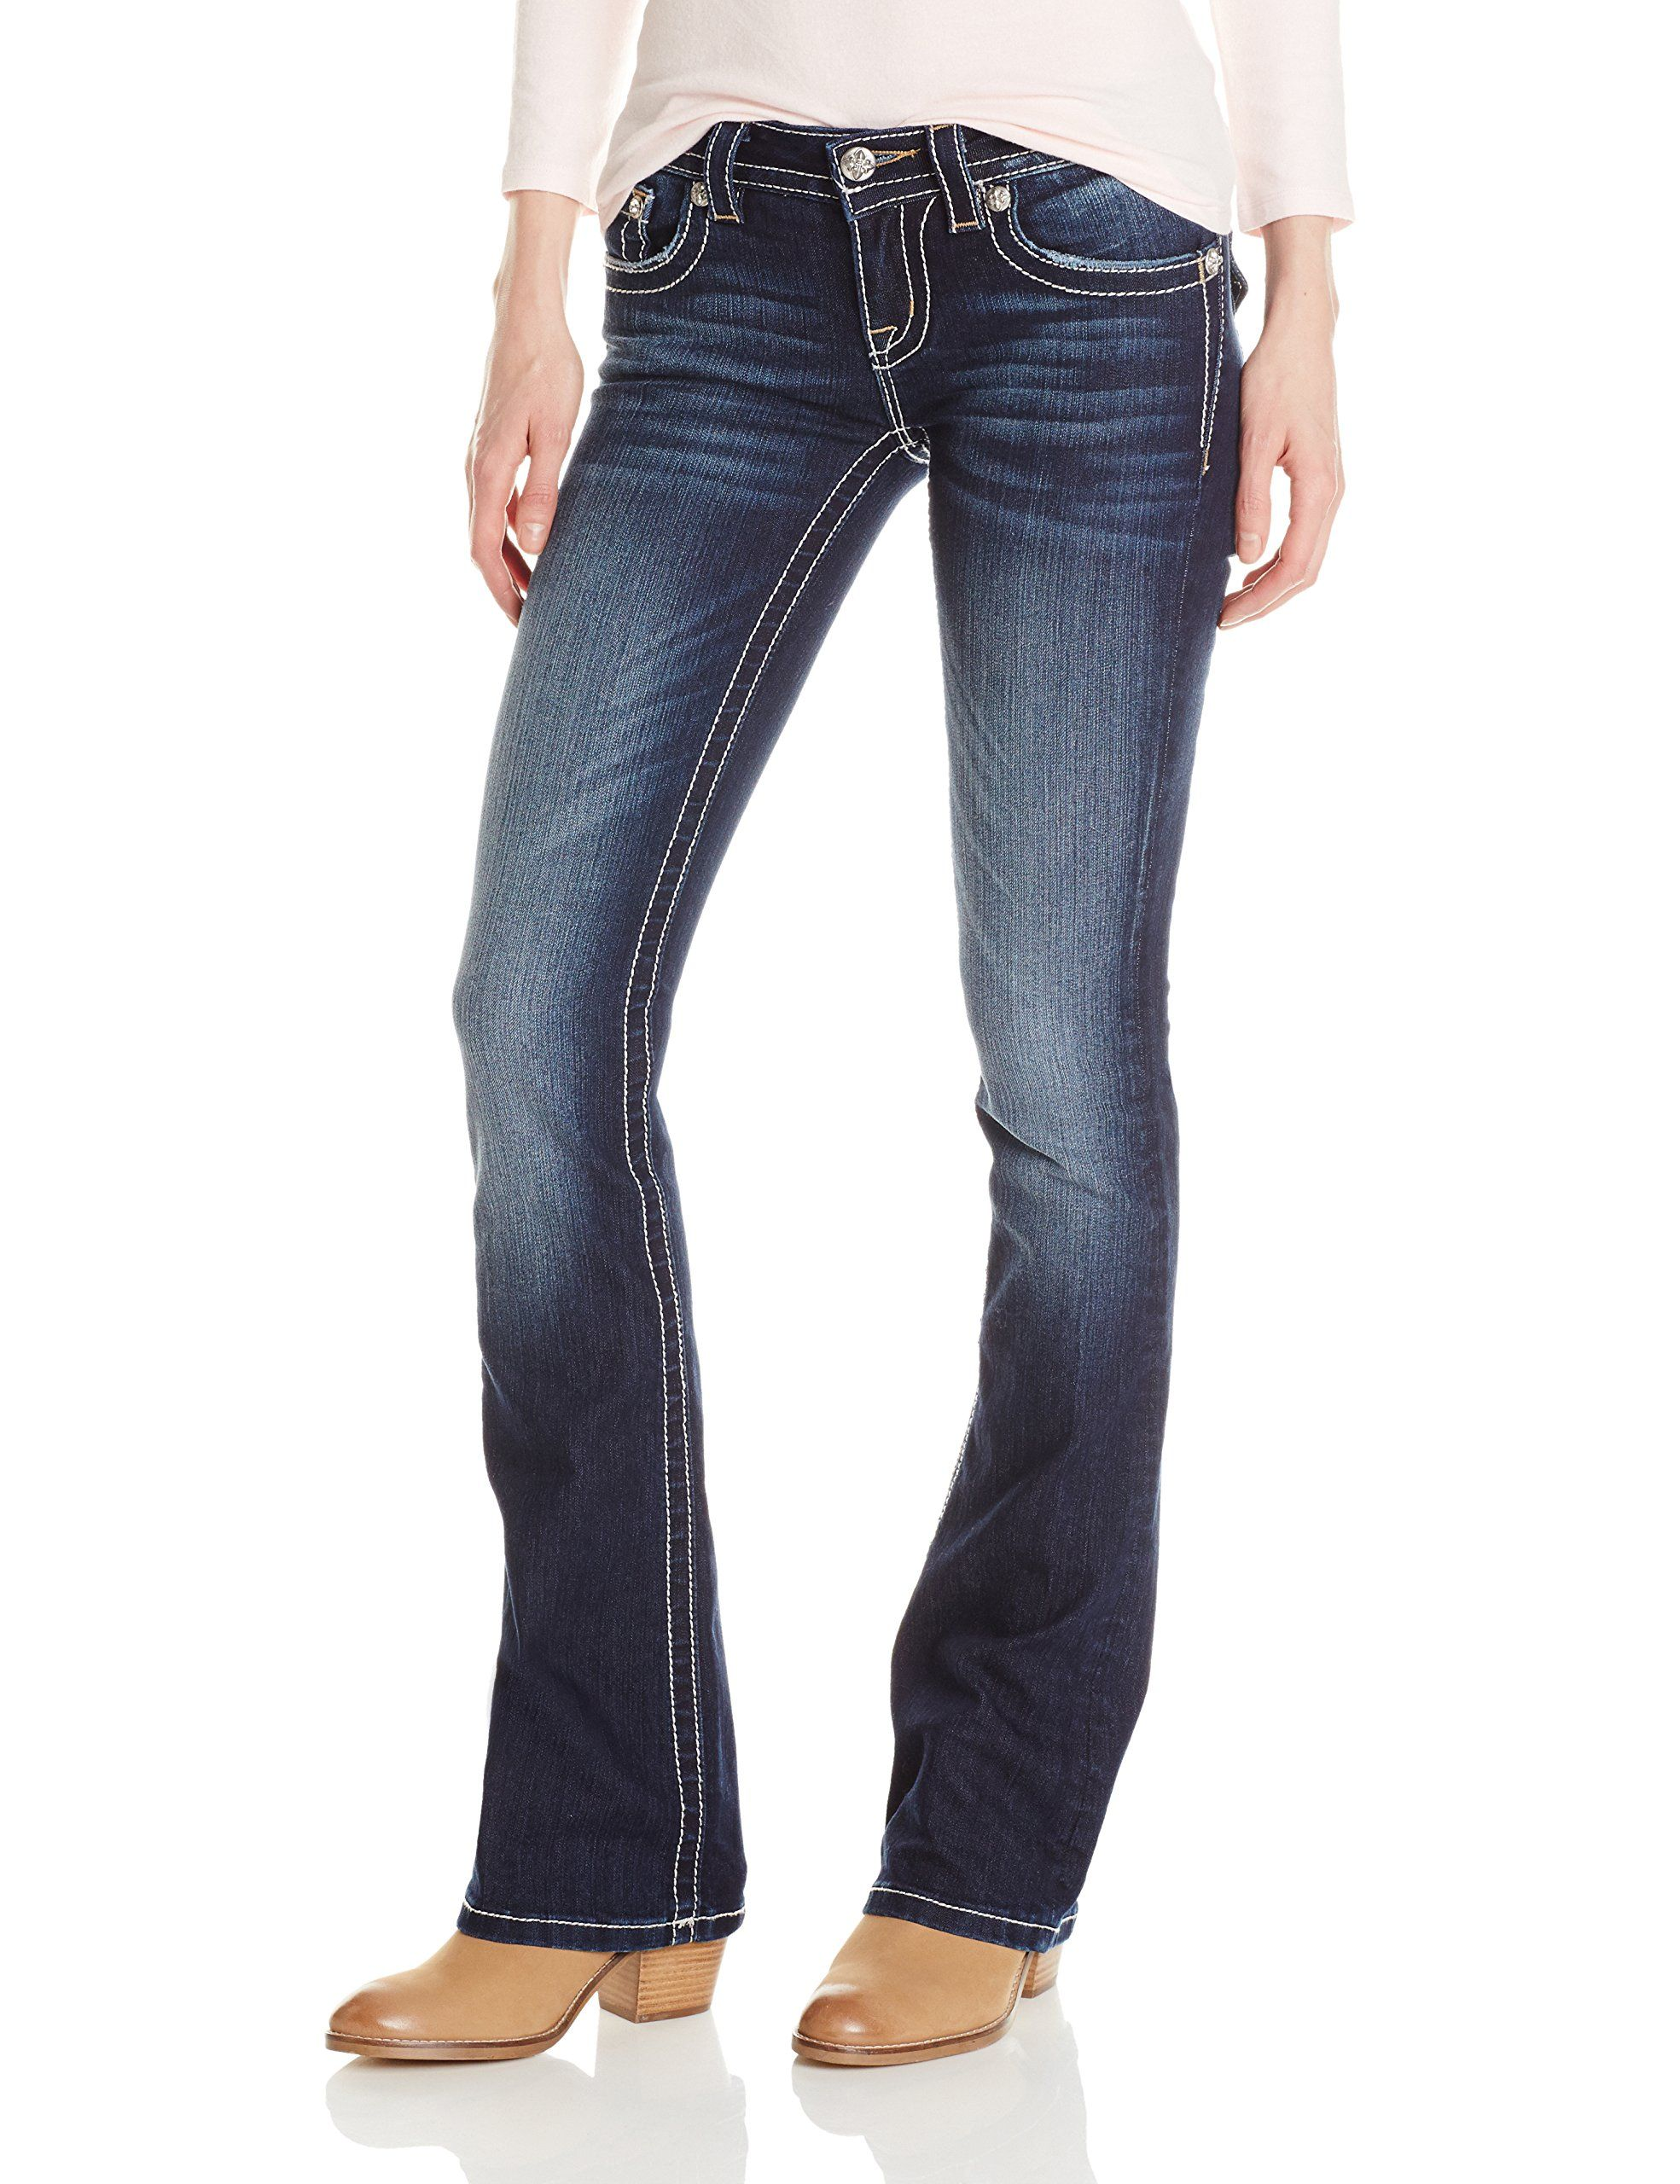 Miss Me Women's Cross Flap Back Pocket Bootcut Jean, Dark Wash, 27. Two tone sequins line flap pocket and create cross design across back pocket. Heavy logo hardware and whiskering throughout jean.